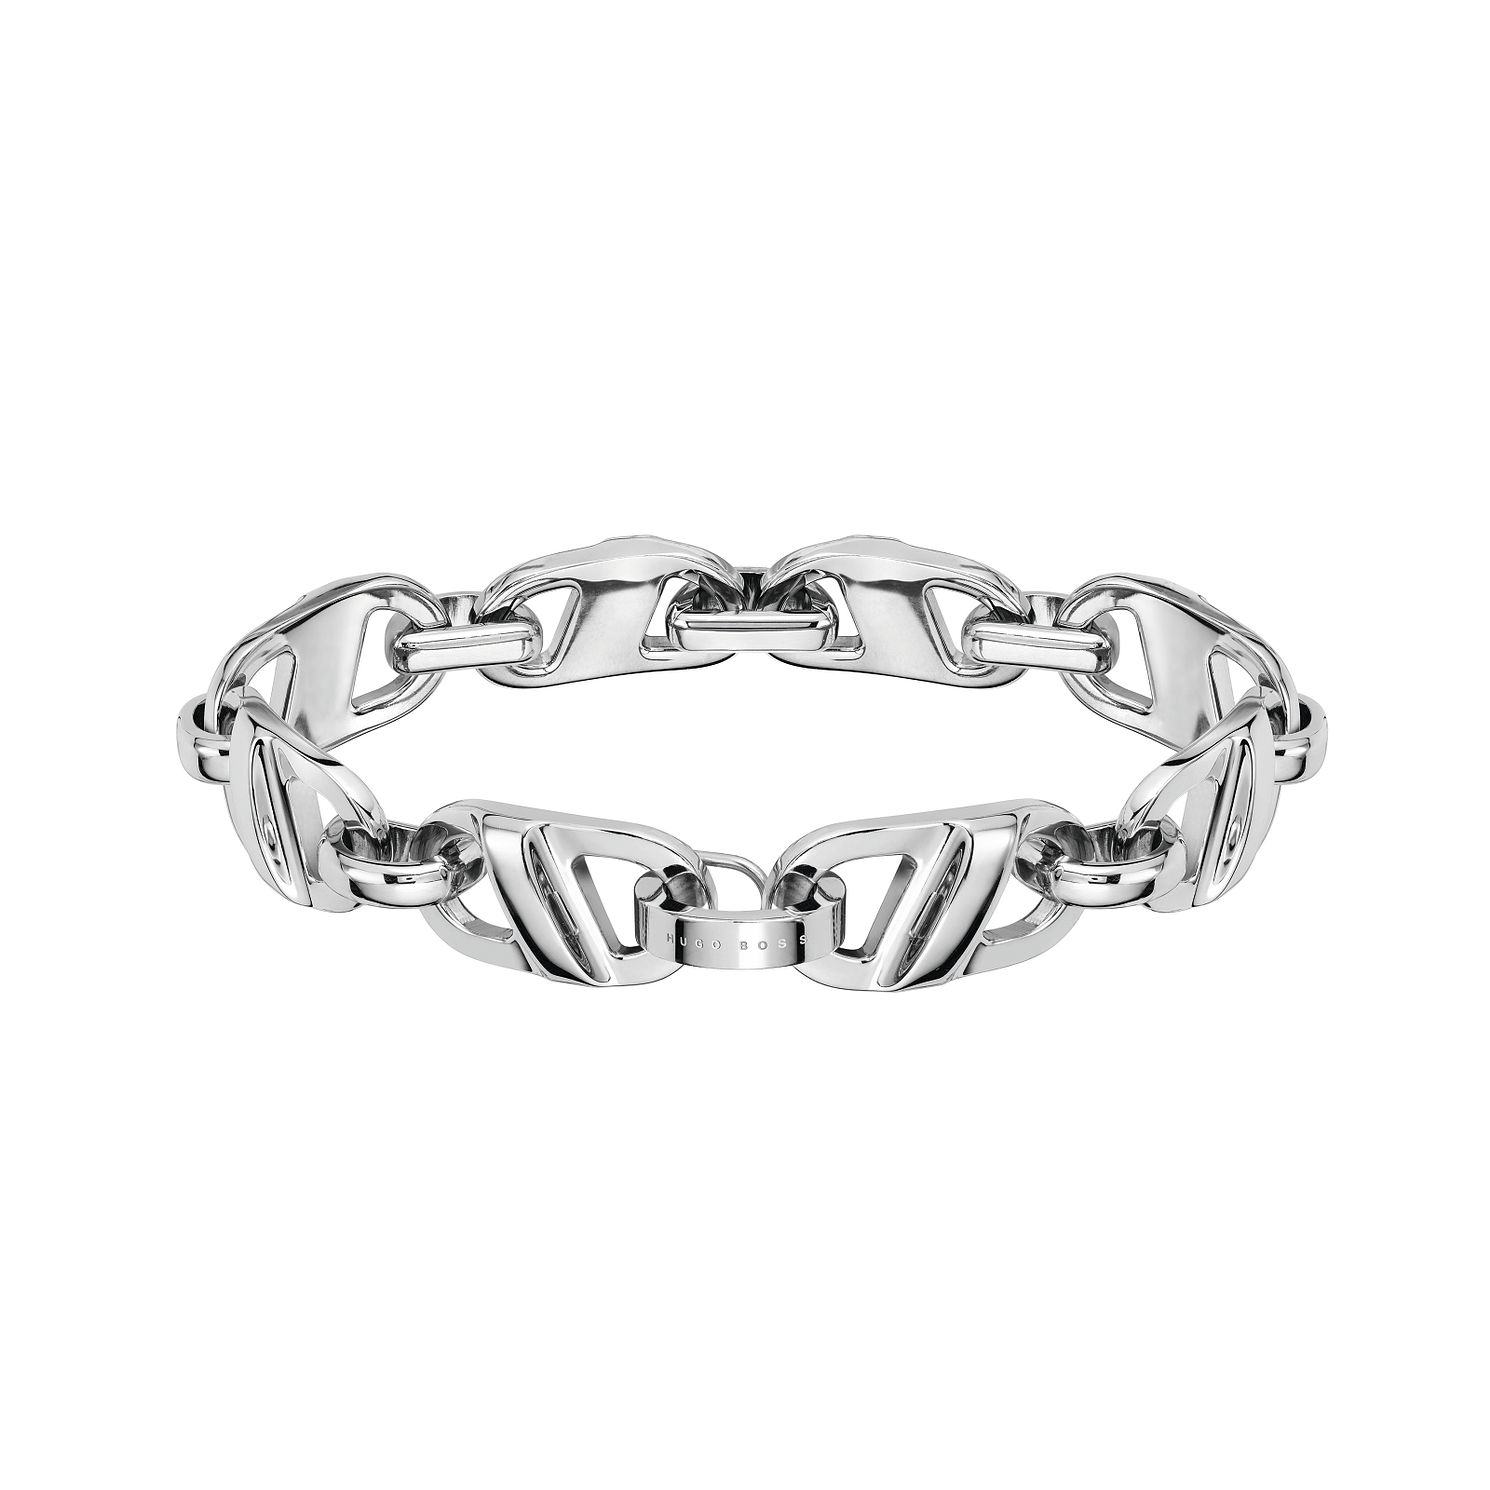 BOSS Chain Ladies' Stainless Steel Link Bracelet - Product number 1201662